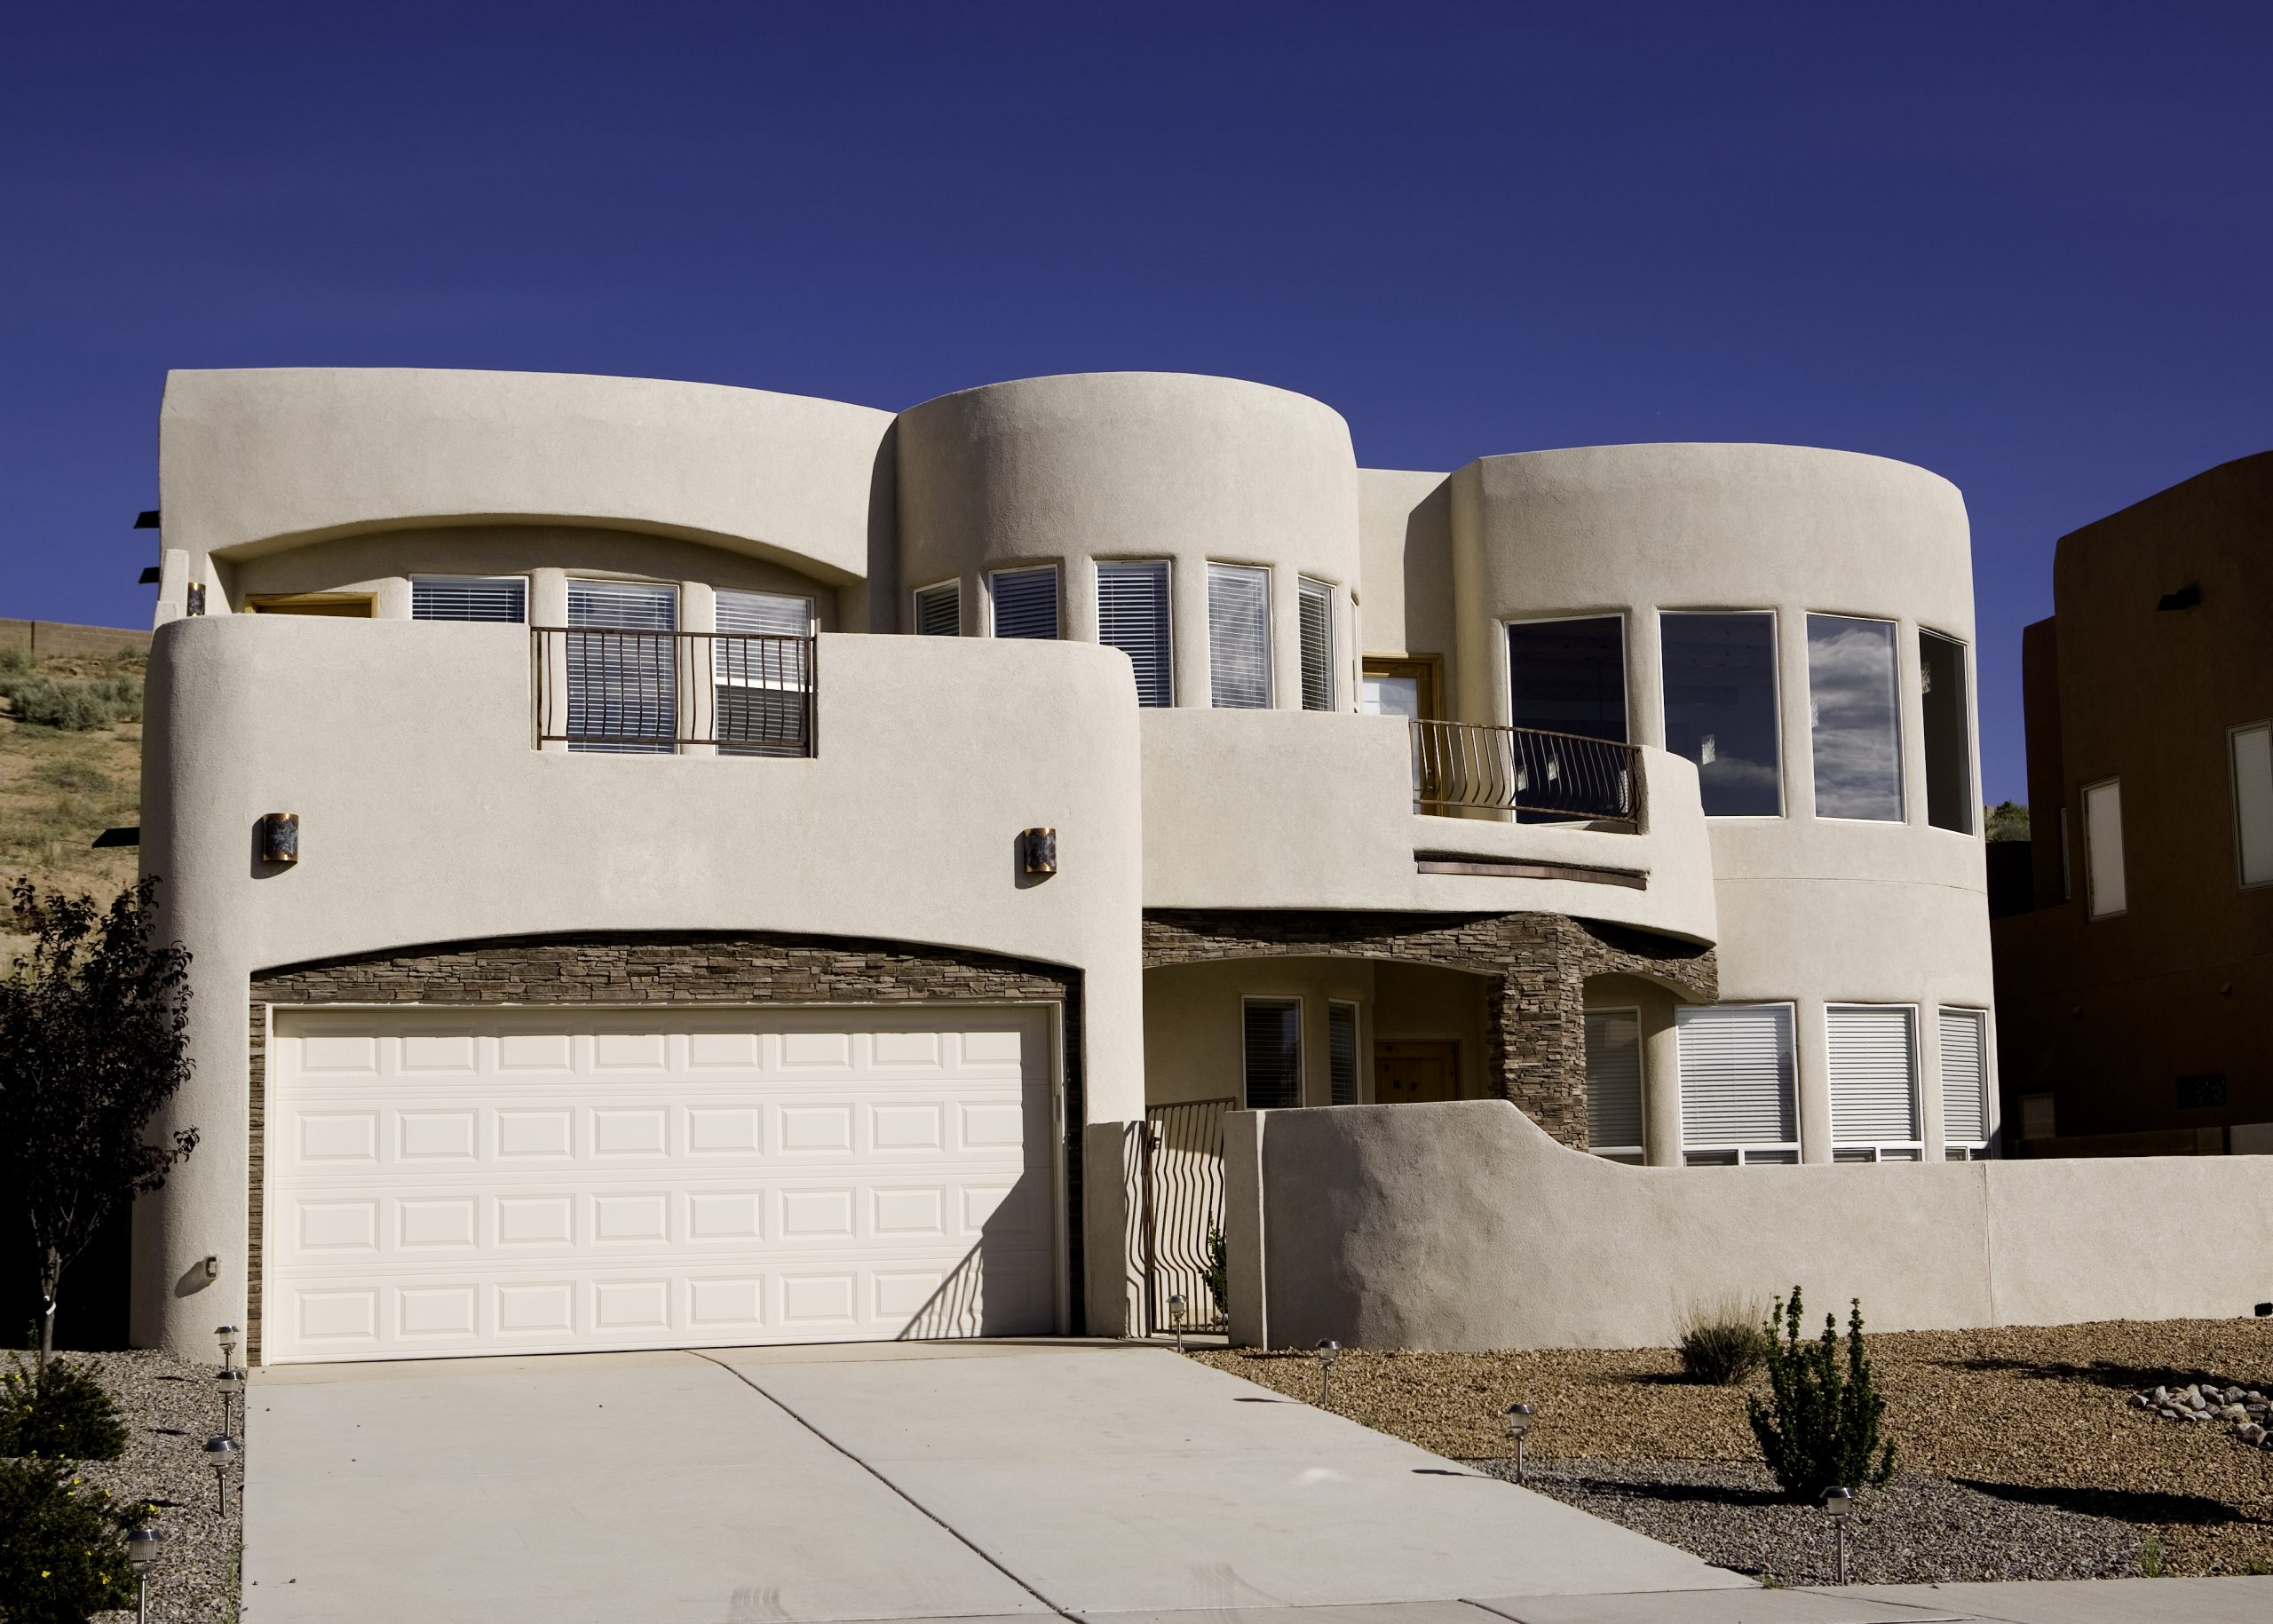 A newer Adobe home located in High Desert, Albuquerque, New Mexico.